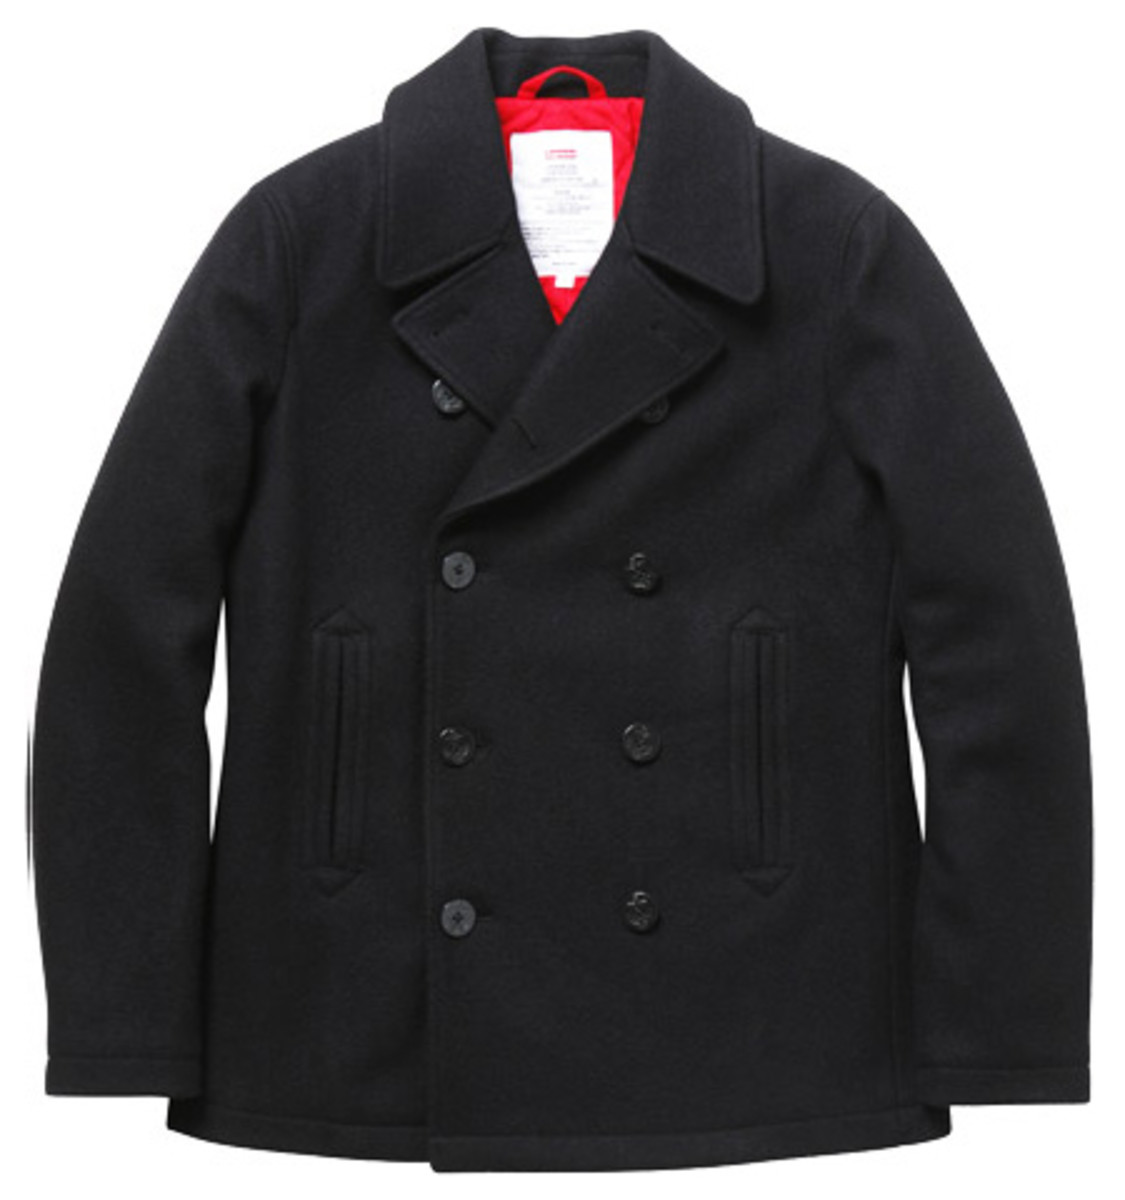 Supreme - Fall/Winter 2009 Collection - Wool Pea Coat (Navy)